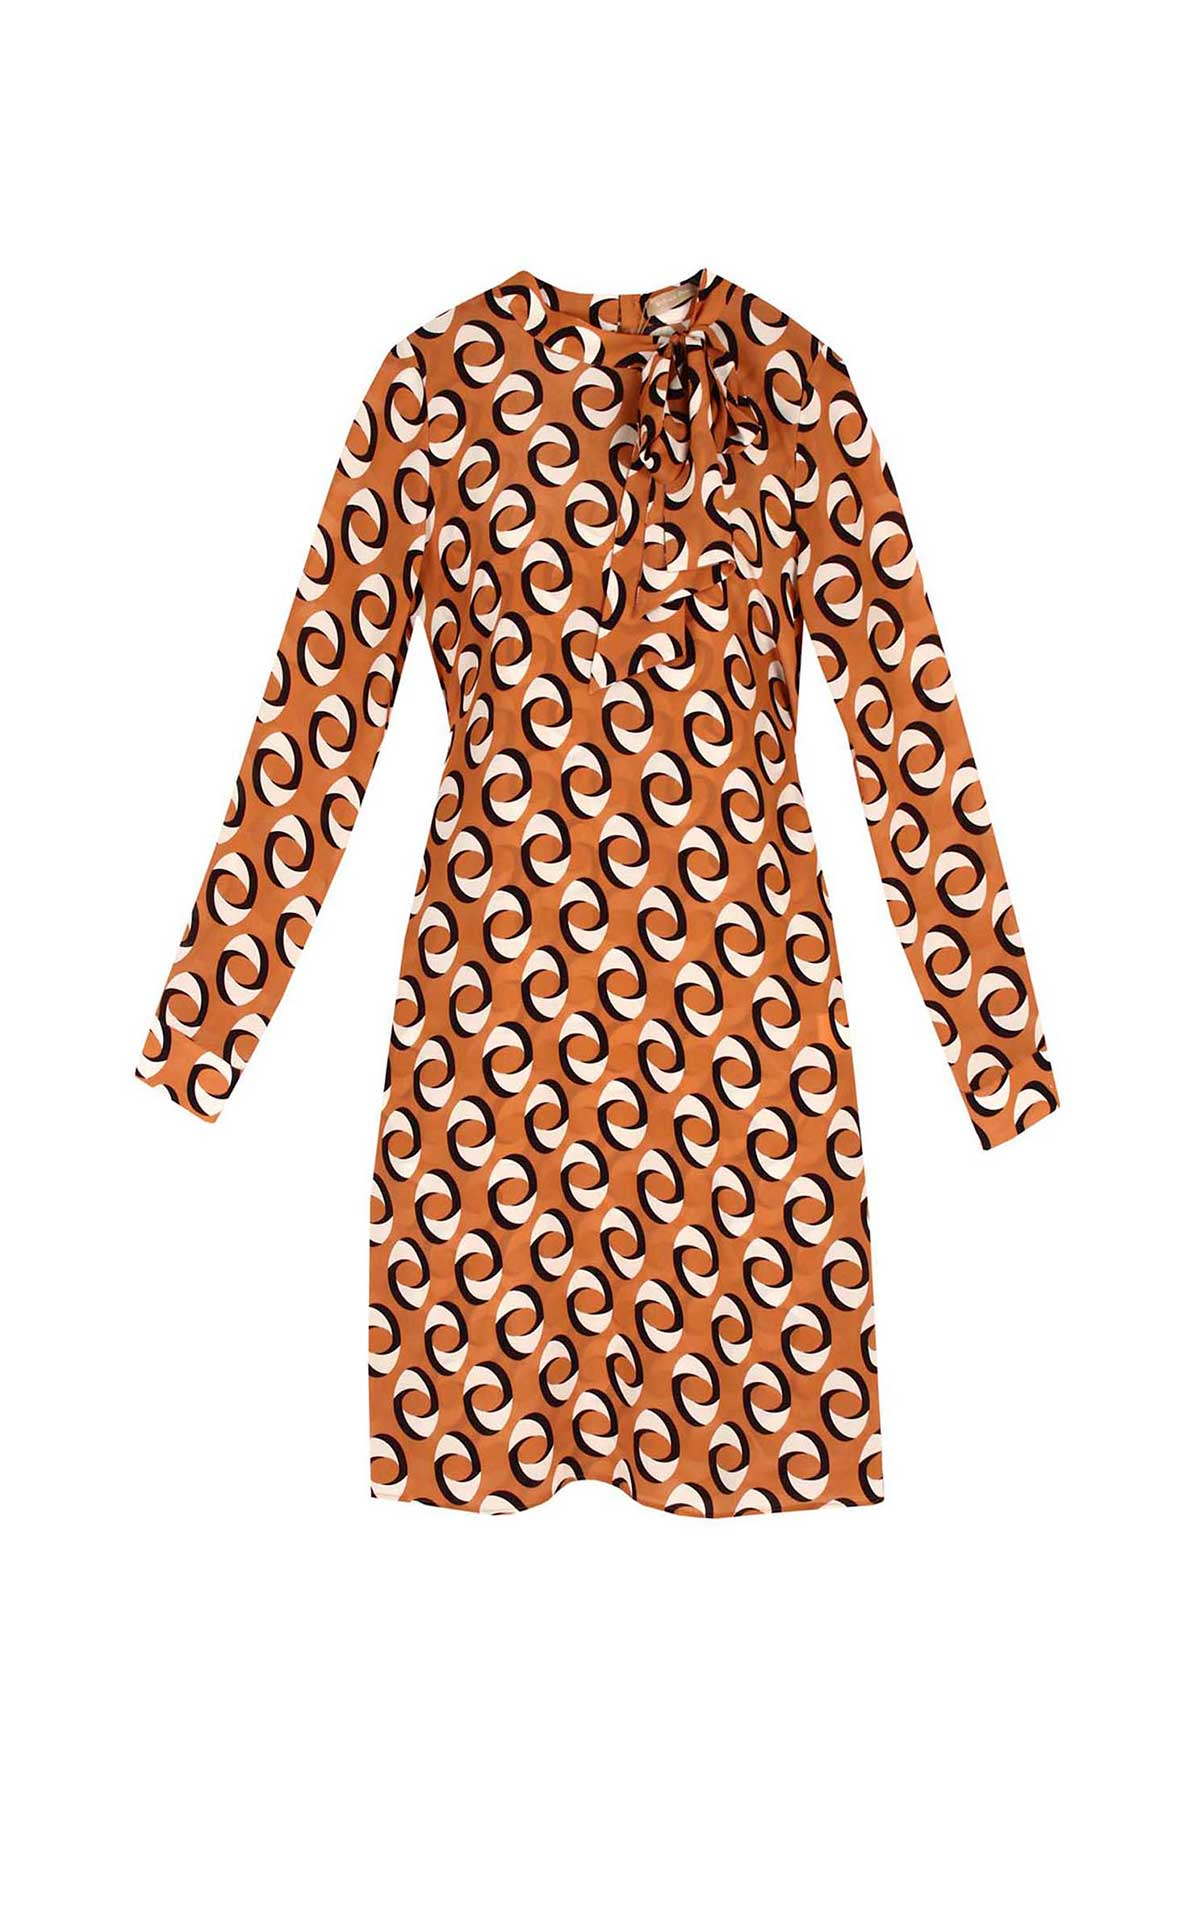 Large print orange dress Dolores Promesas